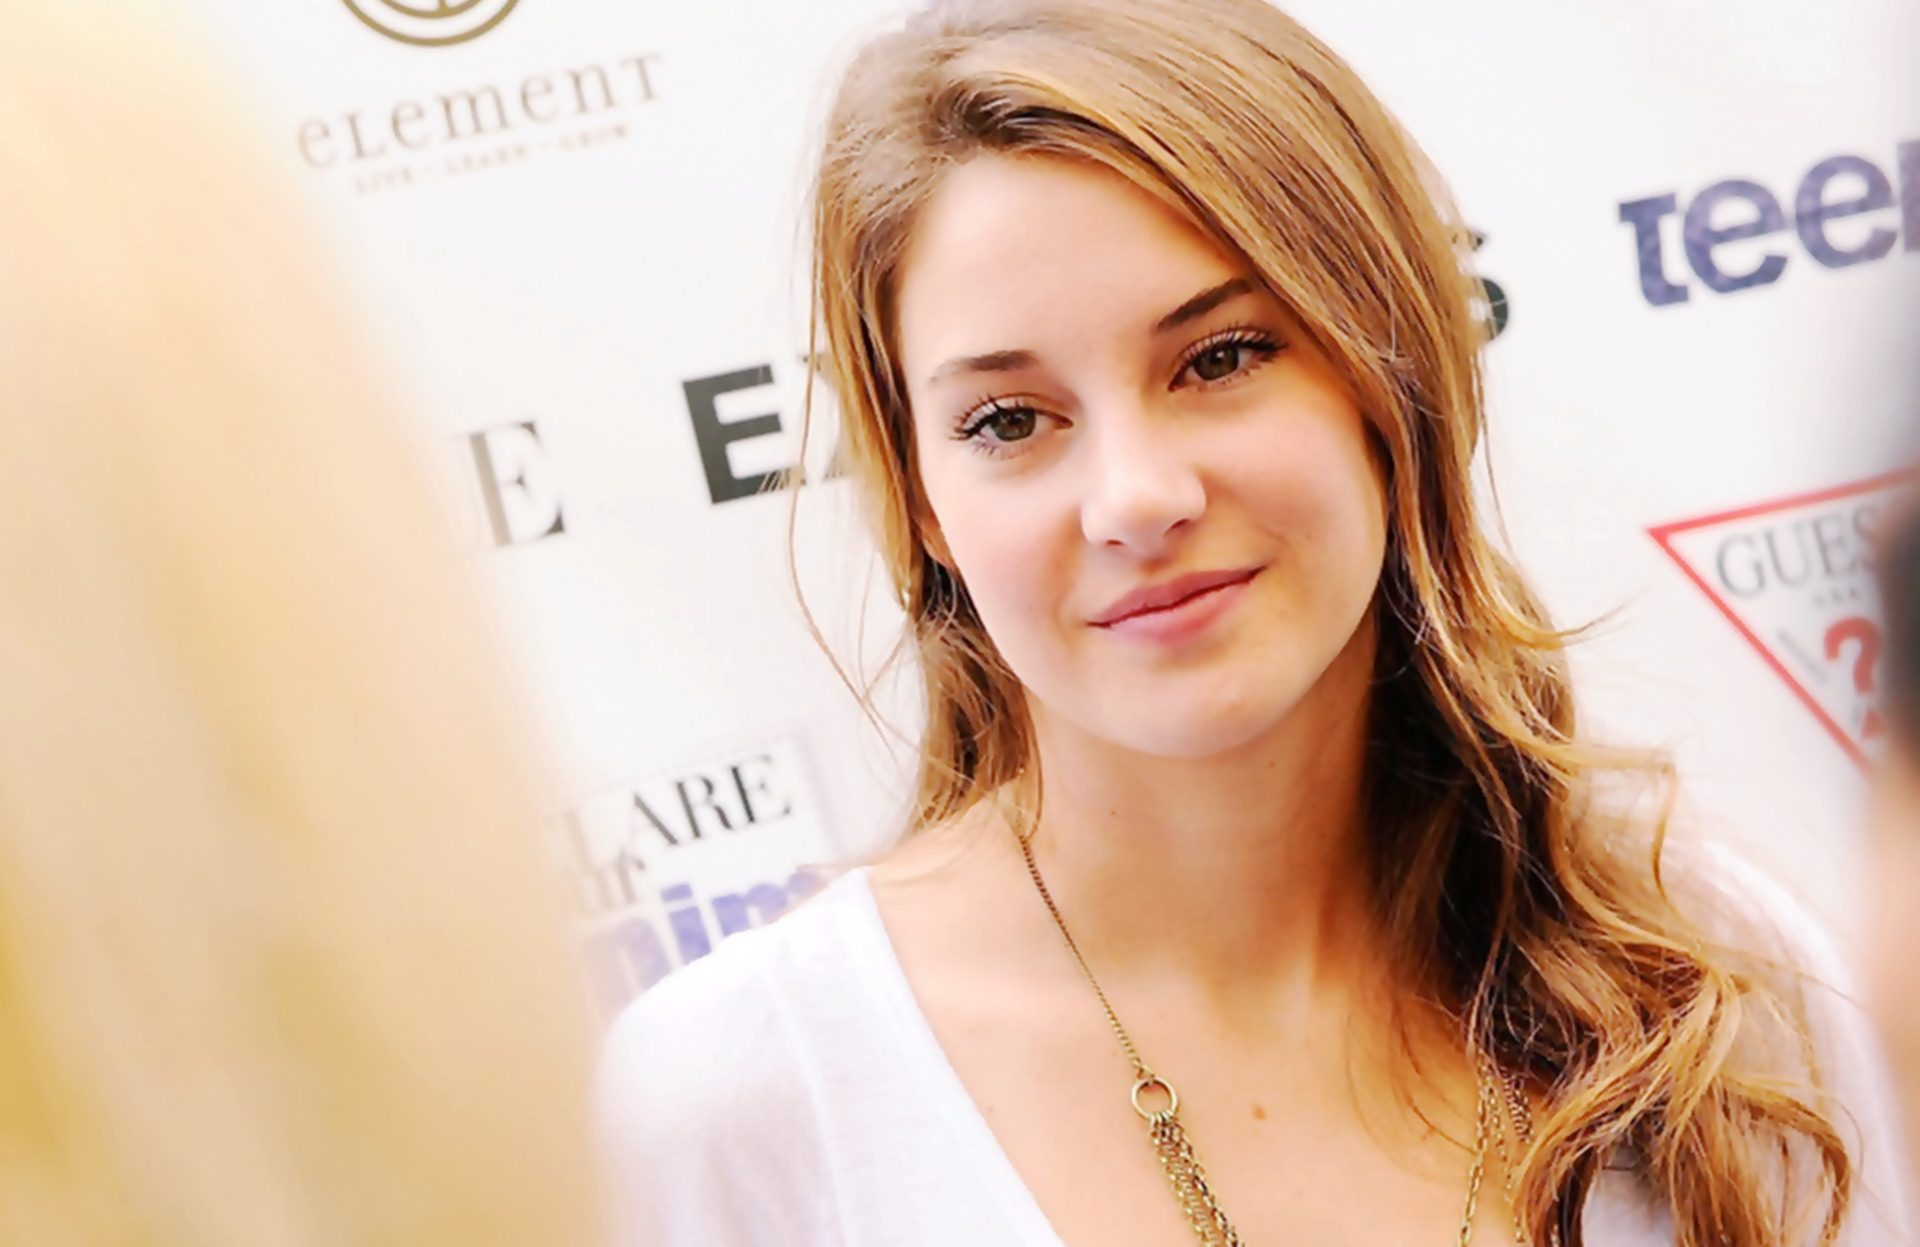 Shailene Woodley 2014 HD Wallpaper Background Images 1920x1247